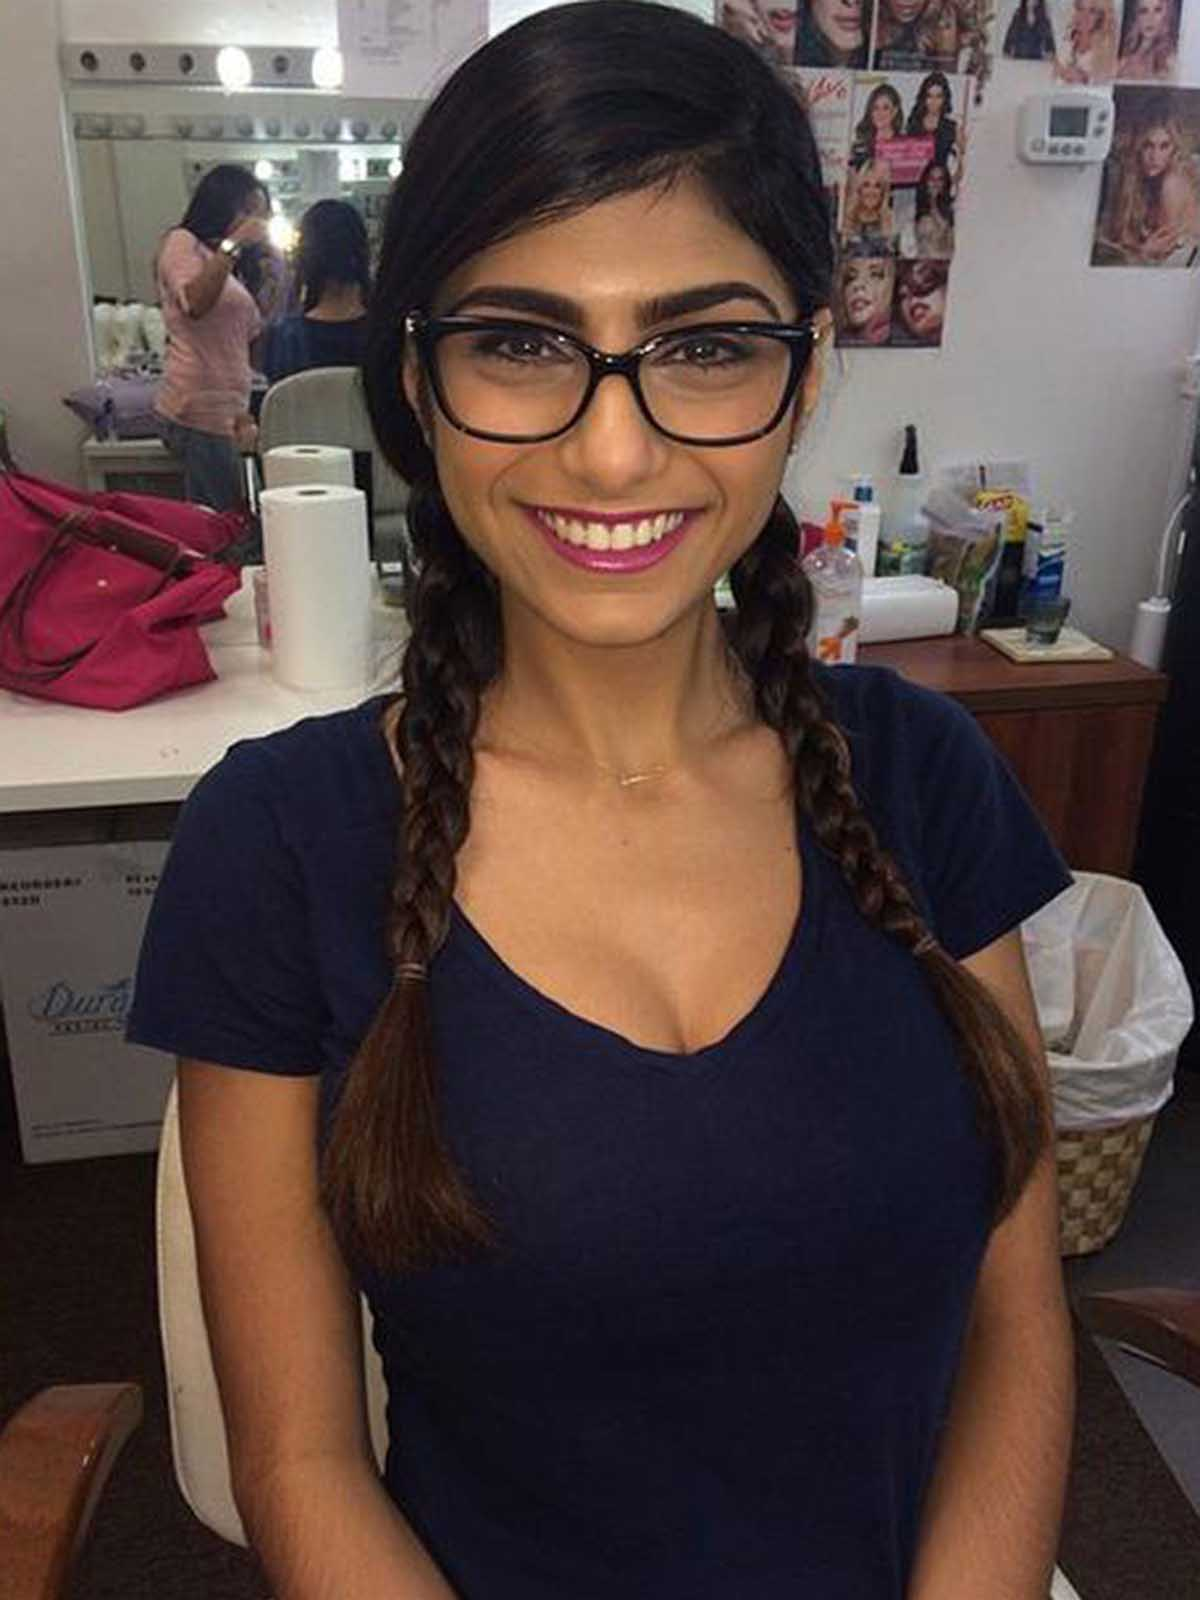 In their campaign against Mia Khalifa, Bangbros is bringing the receipts about her net worth in the porn industry, how many scenes she did, and more.